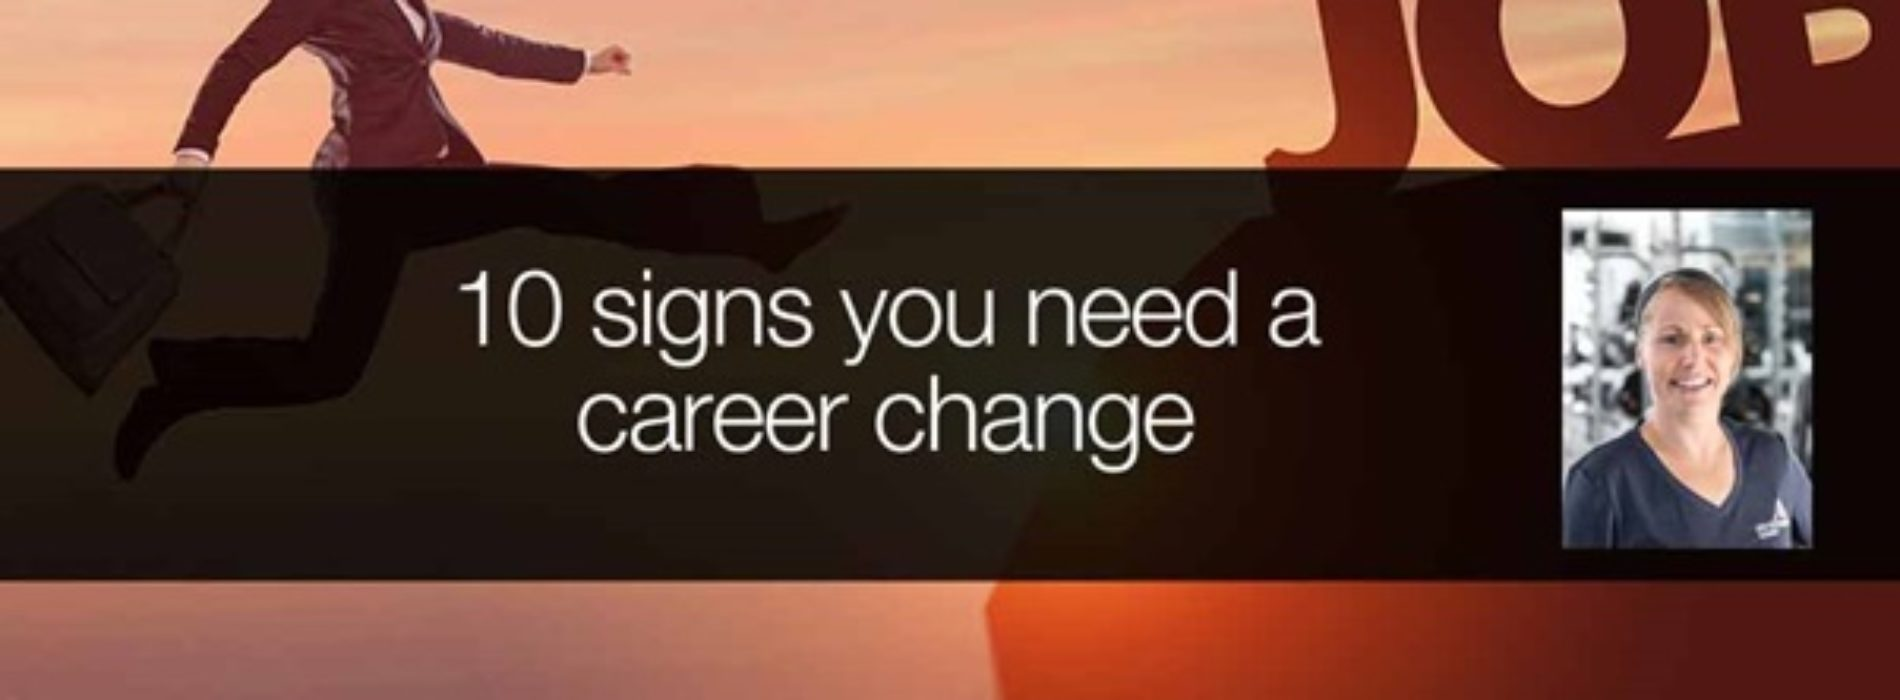 10 signs you need a career change